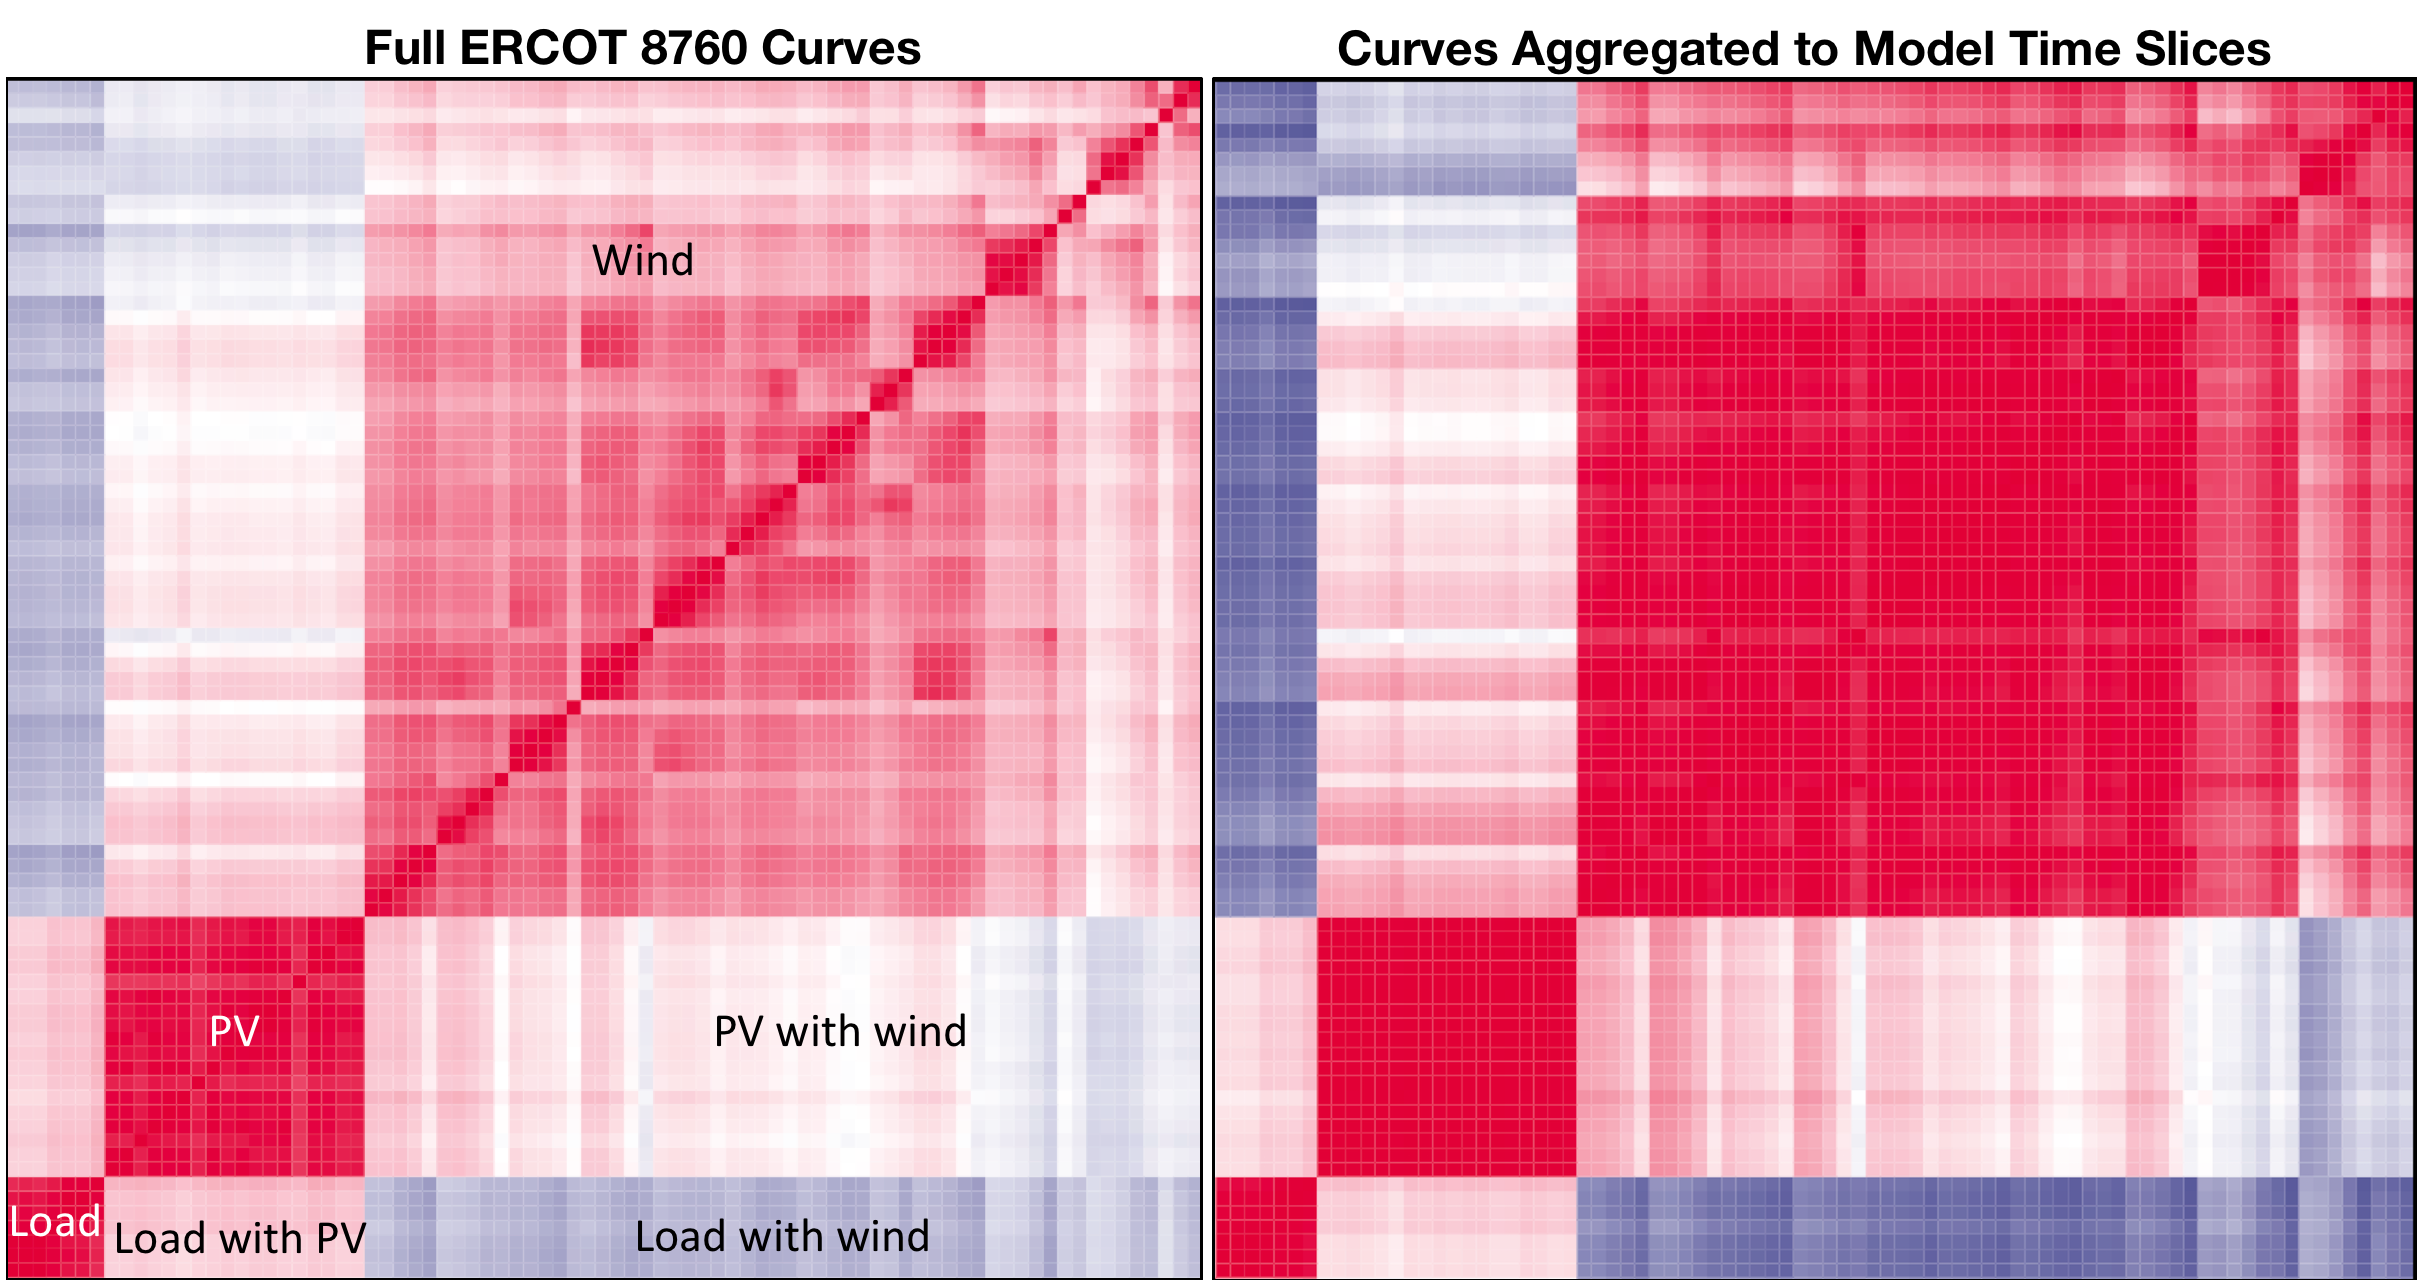 Each small block shows the degree of correlation (red) or negative correlation (Blue) between load, PV, and wind curves in regions within ERCOT. AGGREGATION to model time slices worsens the apparent mismatch between load and wind generation and obscures spatial diversity in renewable generation, suggestion that the aggregation is a conservative approach to estimating renewable generation value.